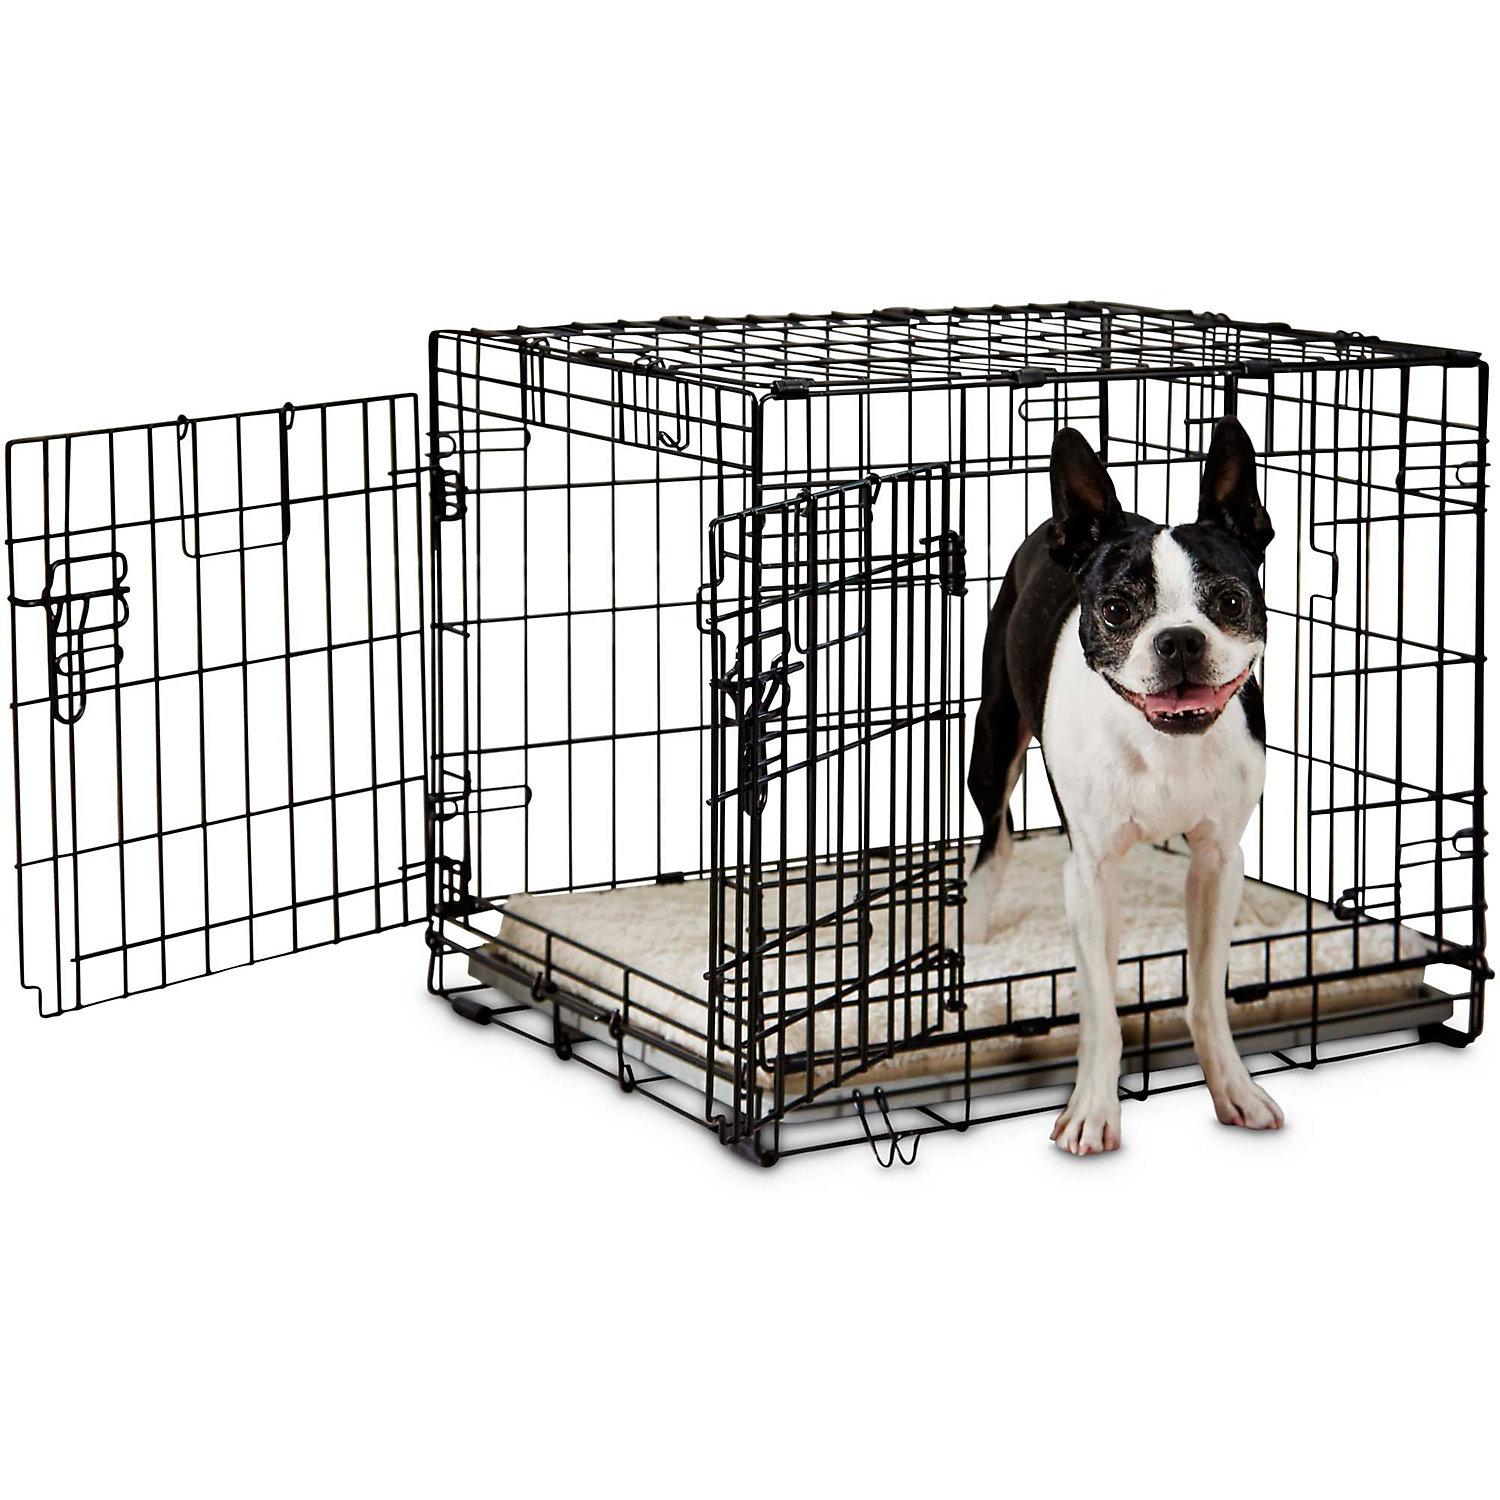 You  Me 2Door Folding Dog Crate 24 L x 17 W x 19 H Small